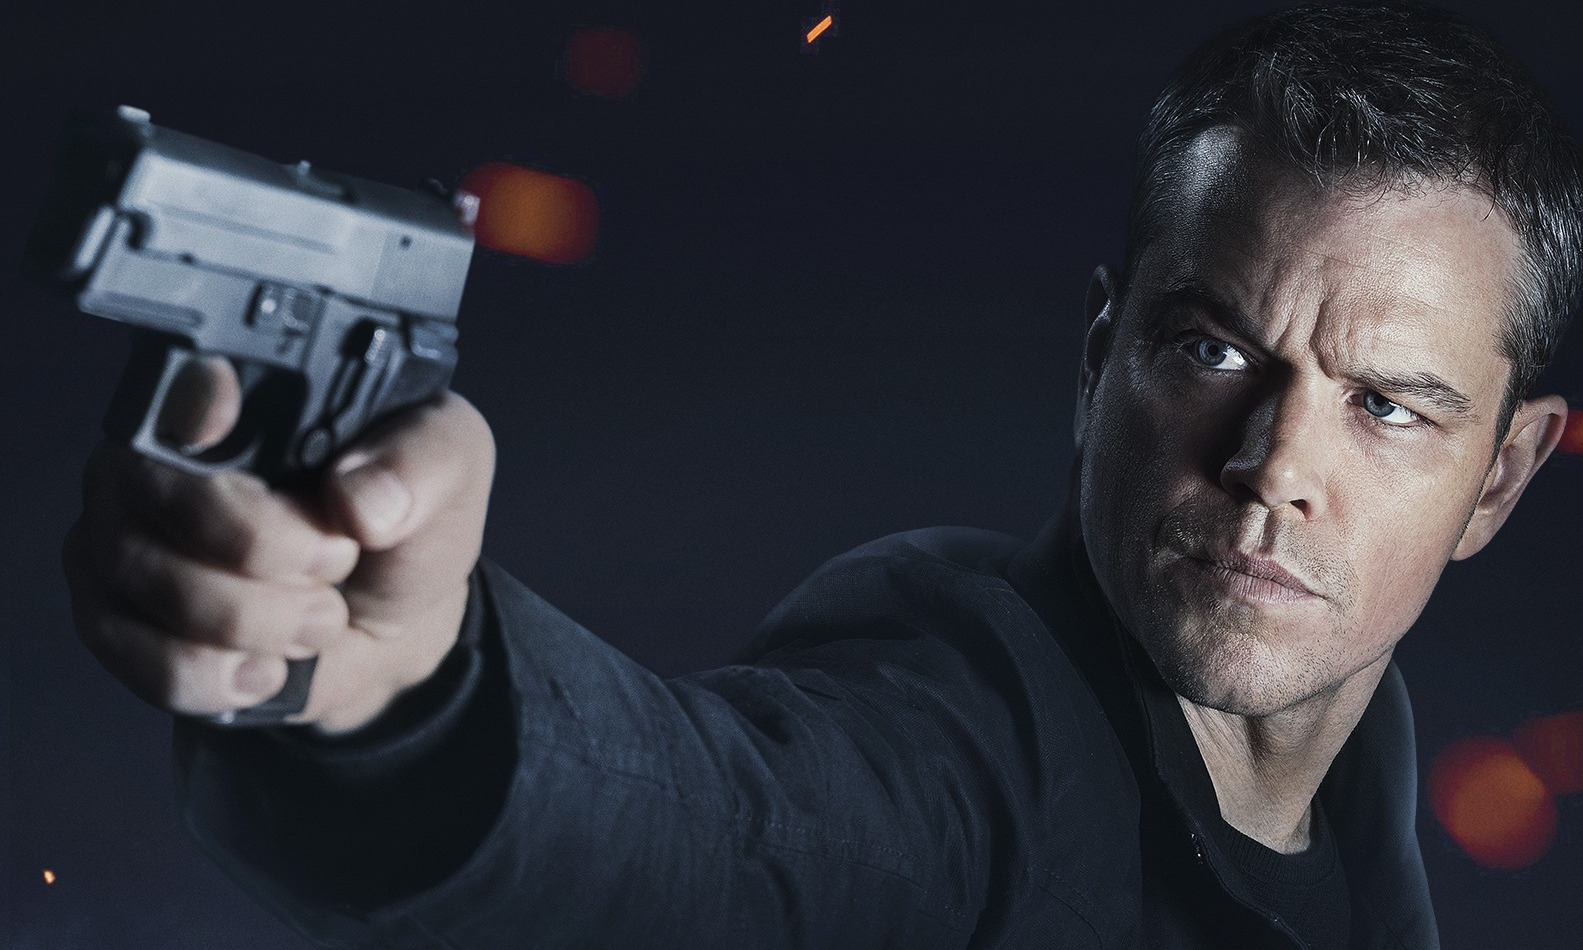 jason bourne review entertaining even if repetitive